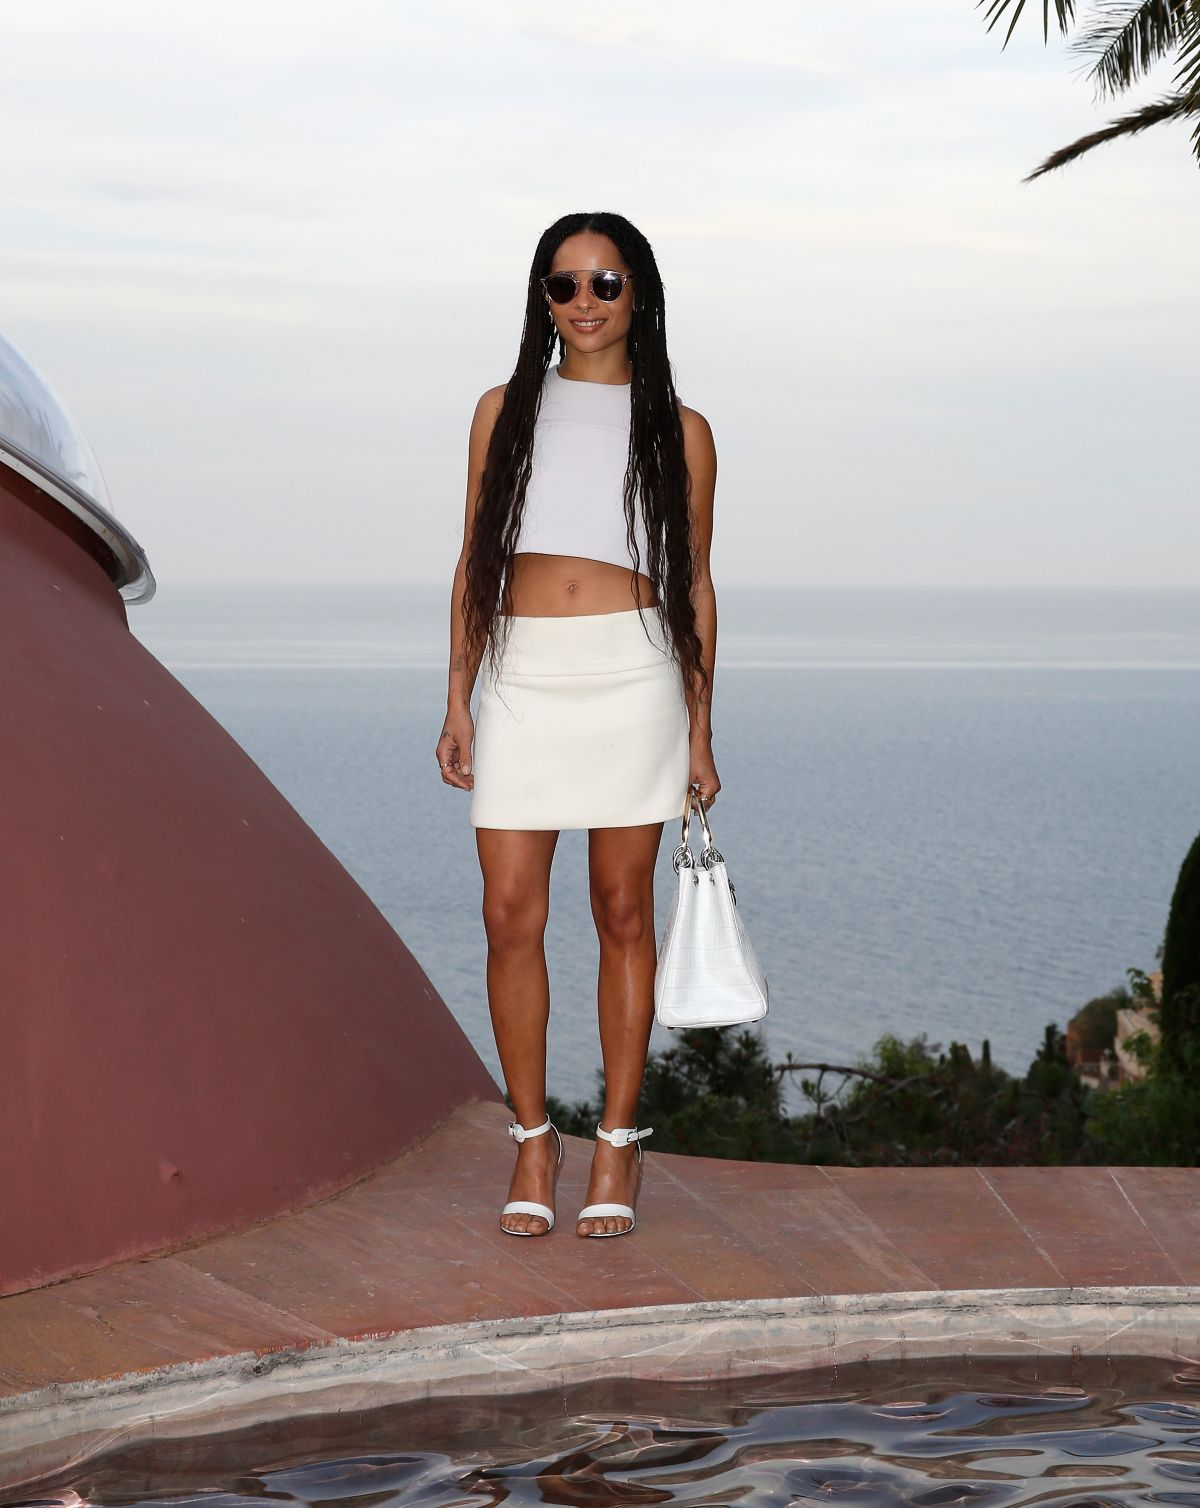 ZOE KRAVITZ at 2016 Dior Cruise Fashion Show in France